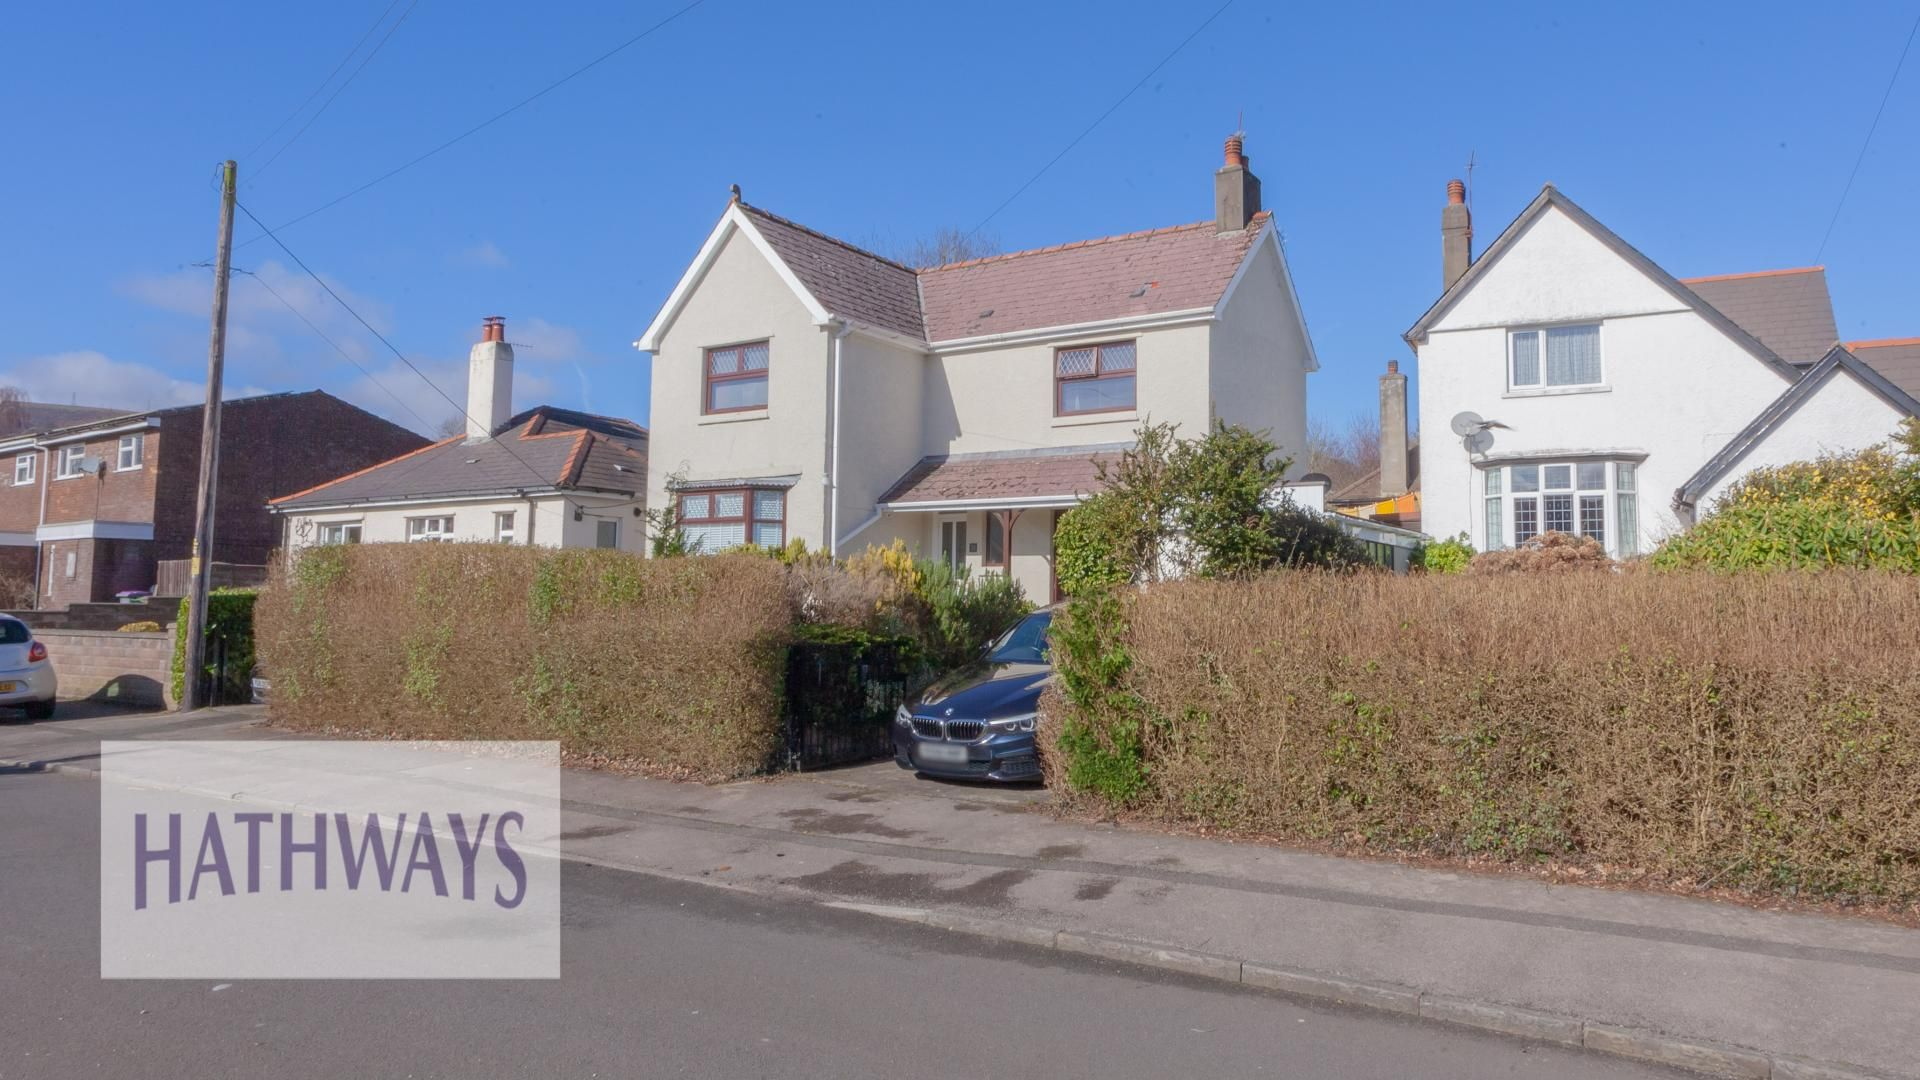 3 bed house for sale in Parc Avenue - Property Image 1